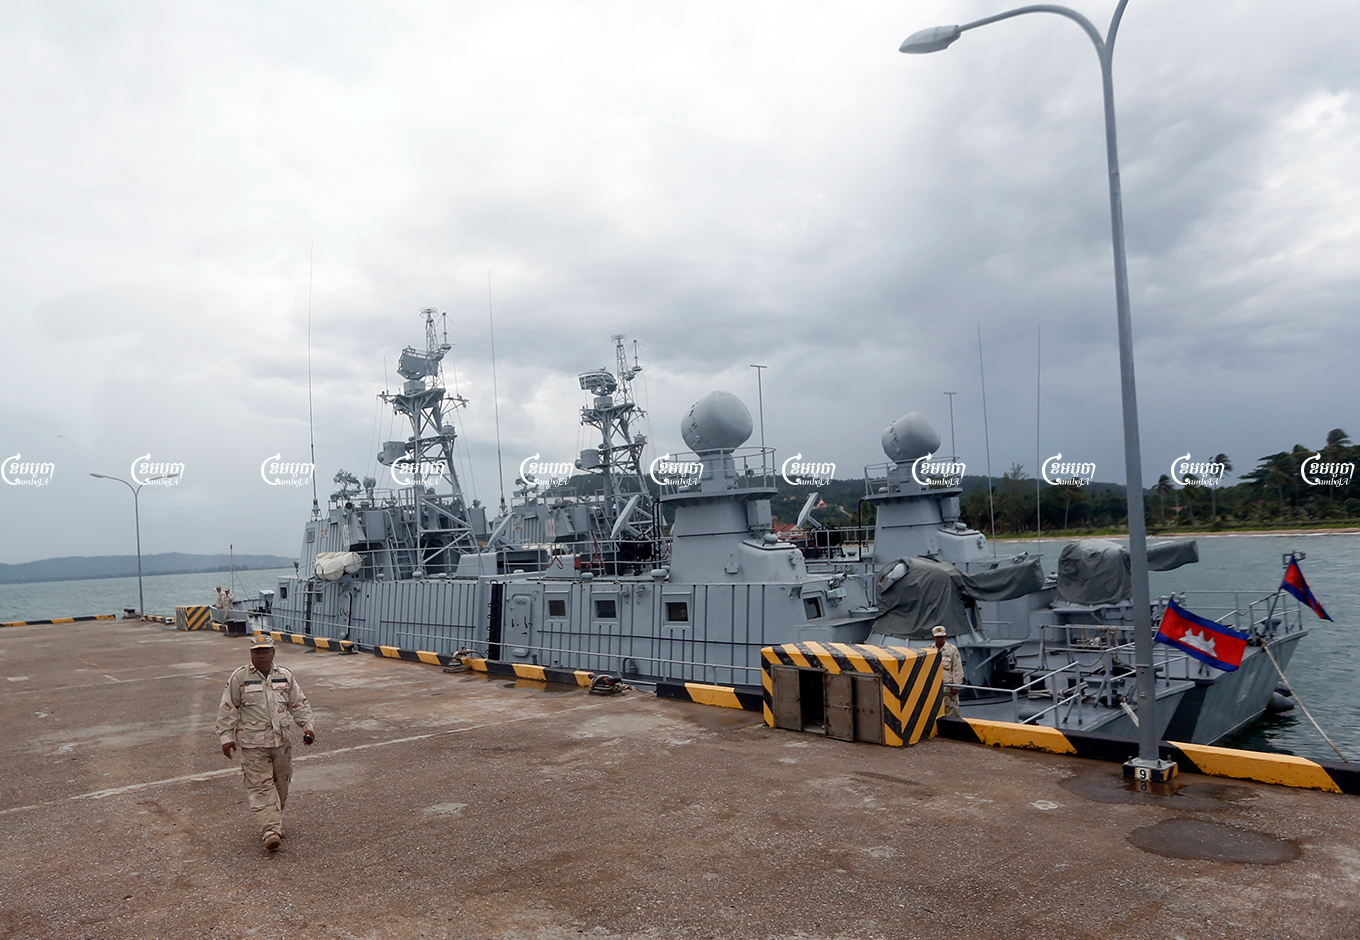 A naval officer walks near patrol boats at Ream Naval Base in Sihanoukville, Cambodia. Picture taken during a media trip organized by the government on July 26, 2019. CamboJA/ Pring Samrang